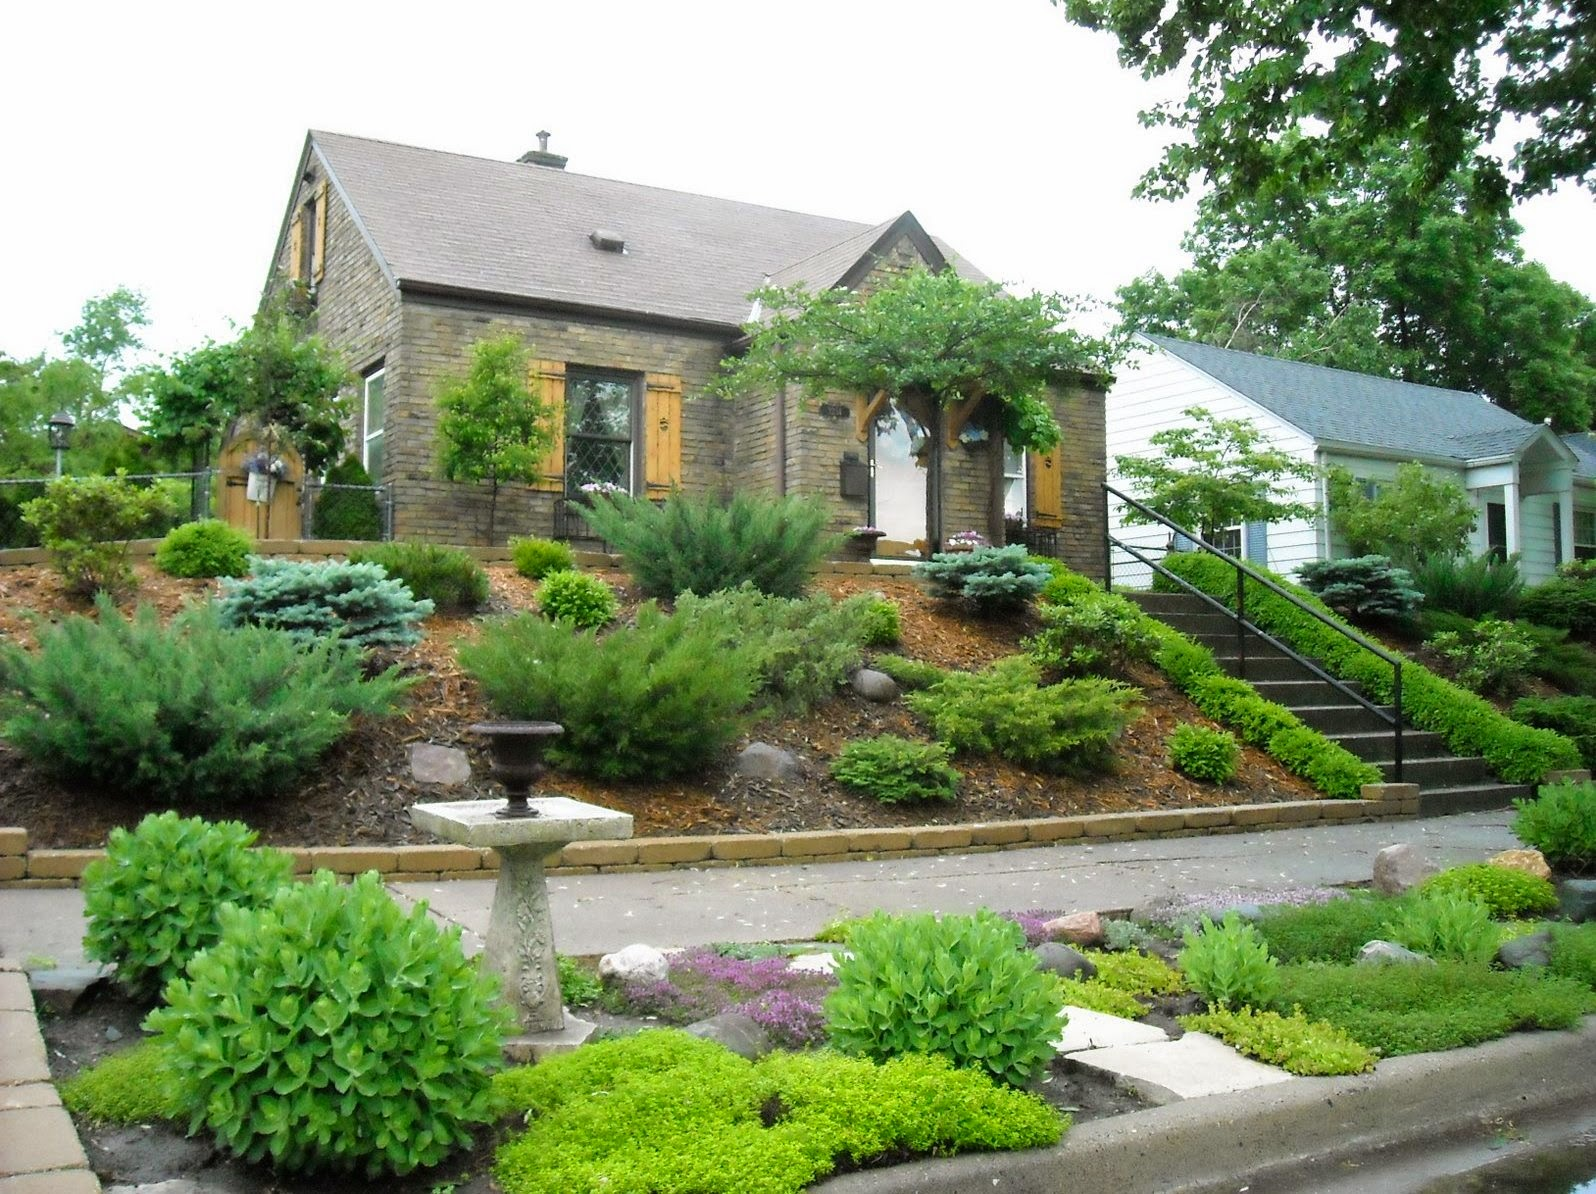 Landscaping Ideas for Front of House  Home Design Inside